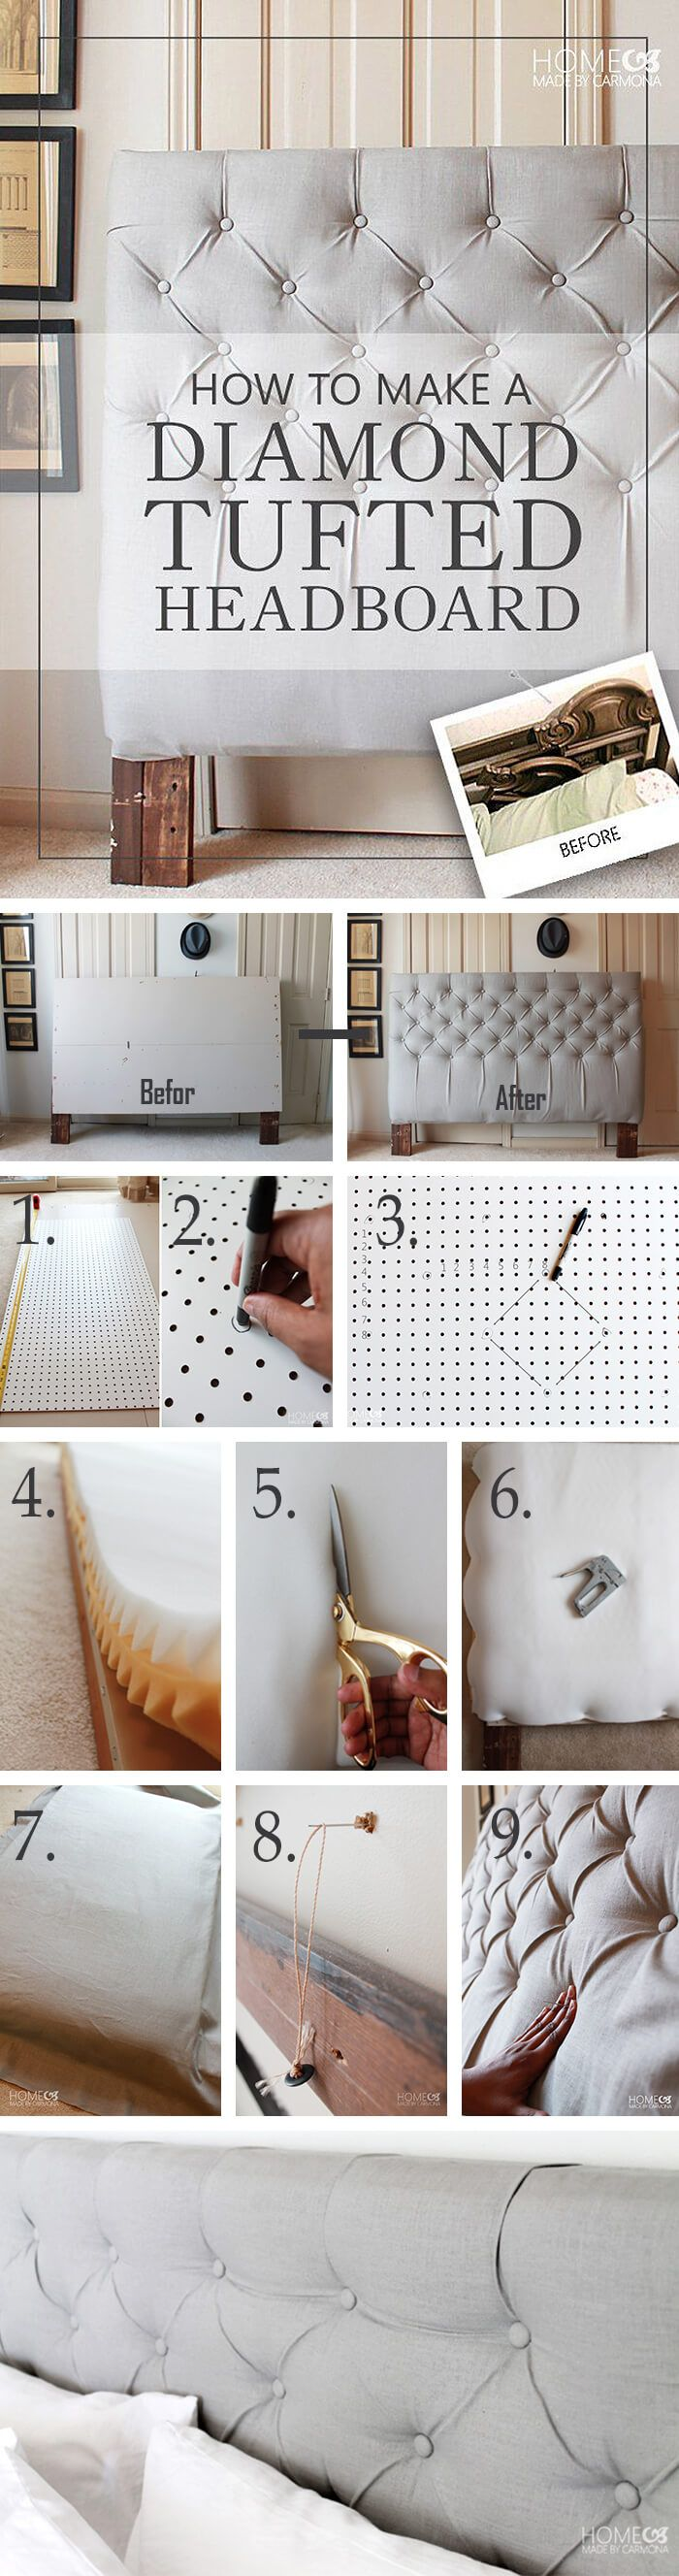 Diy bedroom headboard ideas  of the best ways to use diy headboards to create the room of your